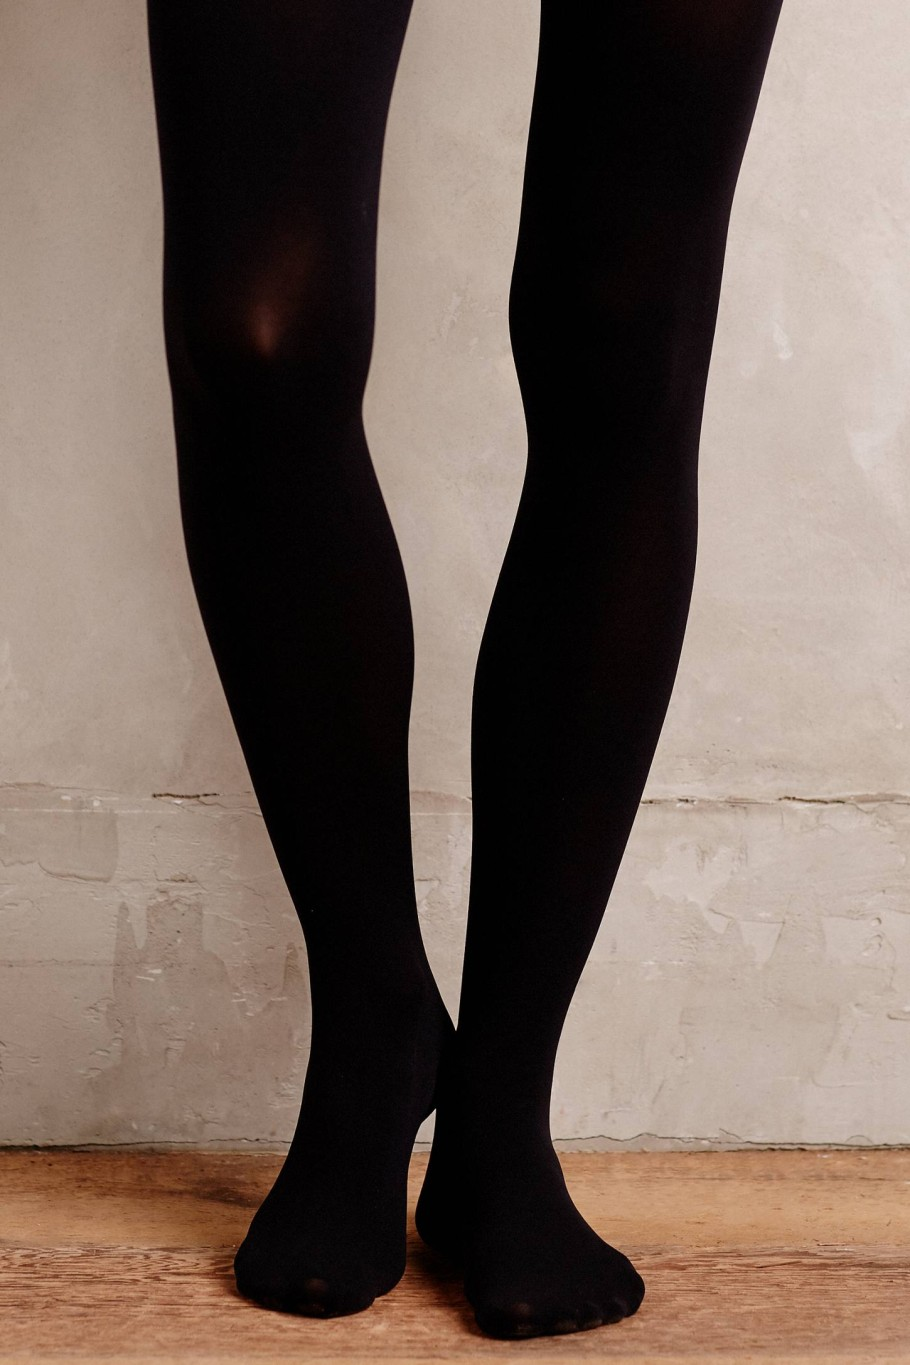 Clothing for Halloween, tights